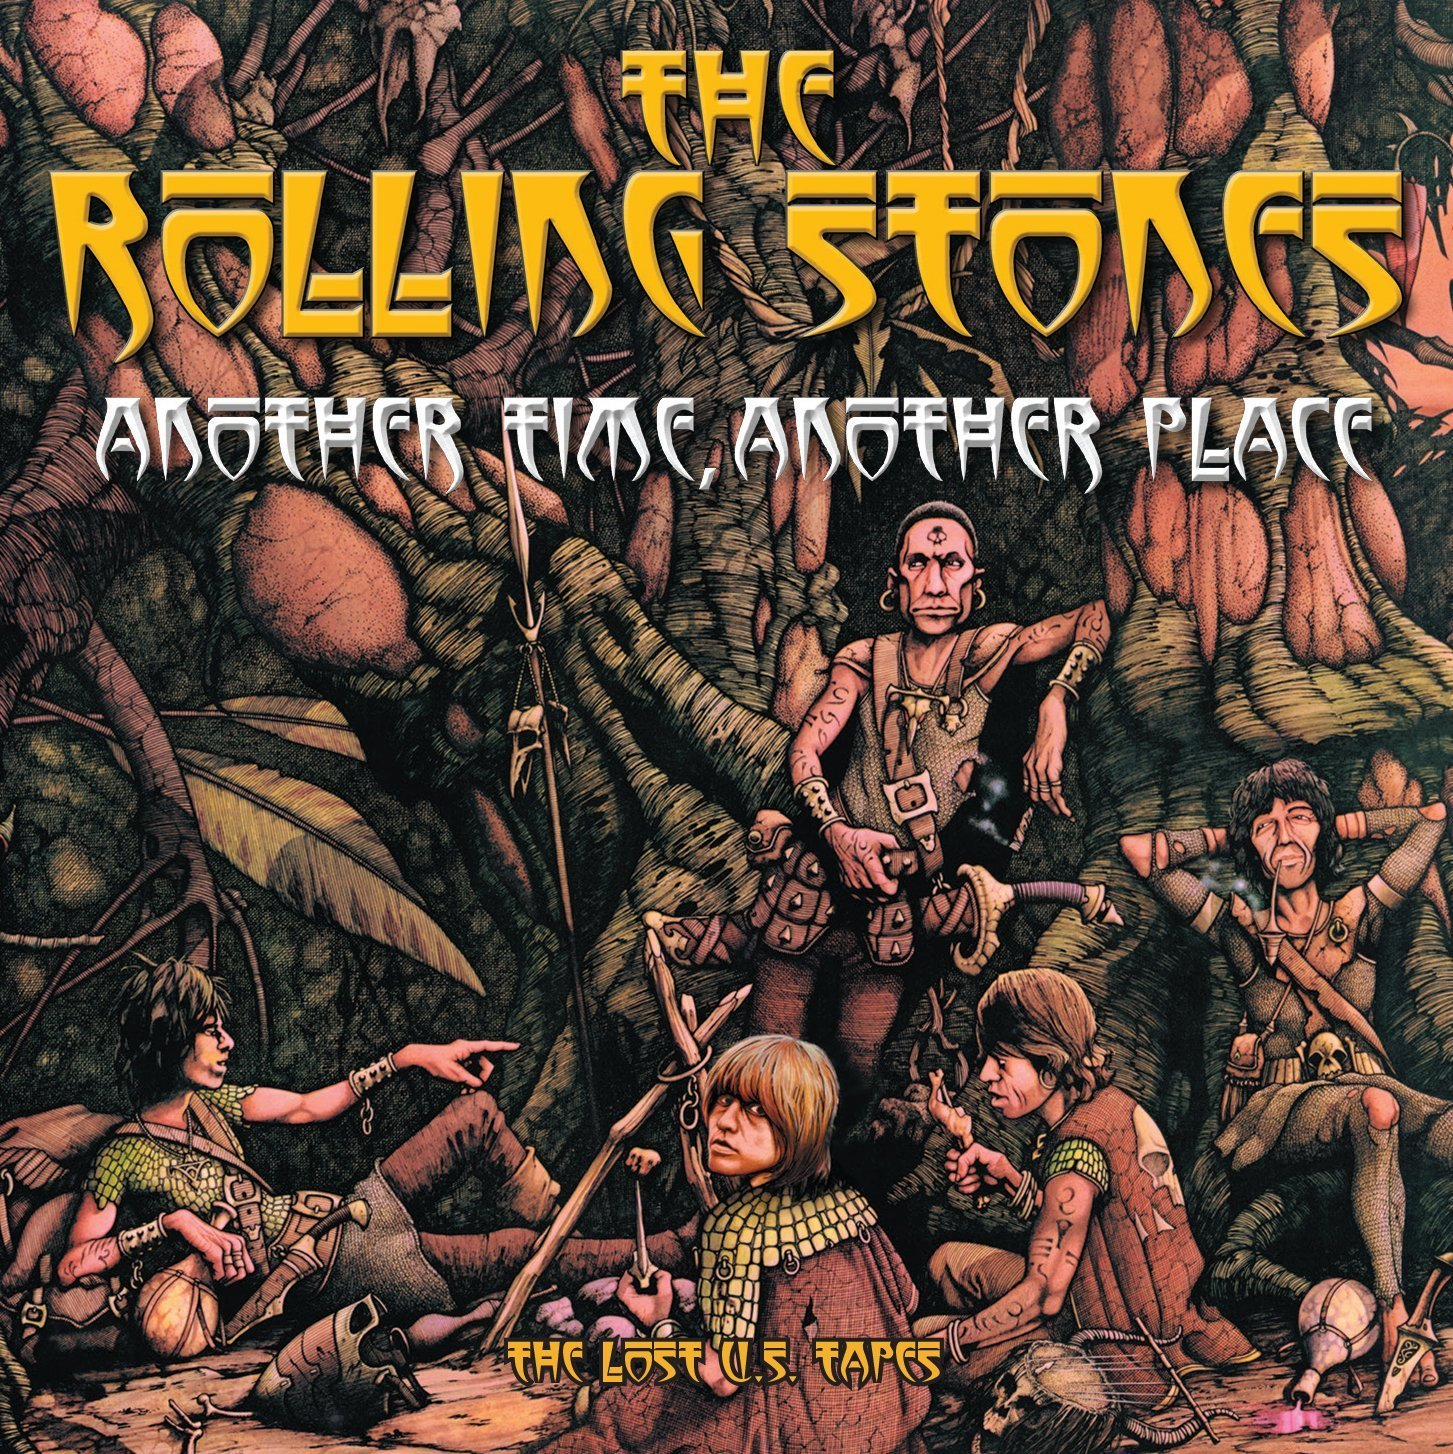 The Rolling Stones - Another Time, Another Place 2016 (6CD)